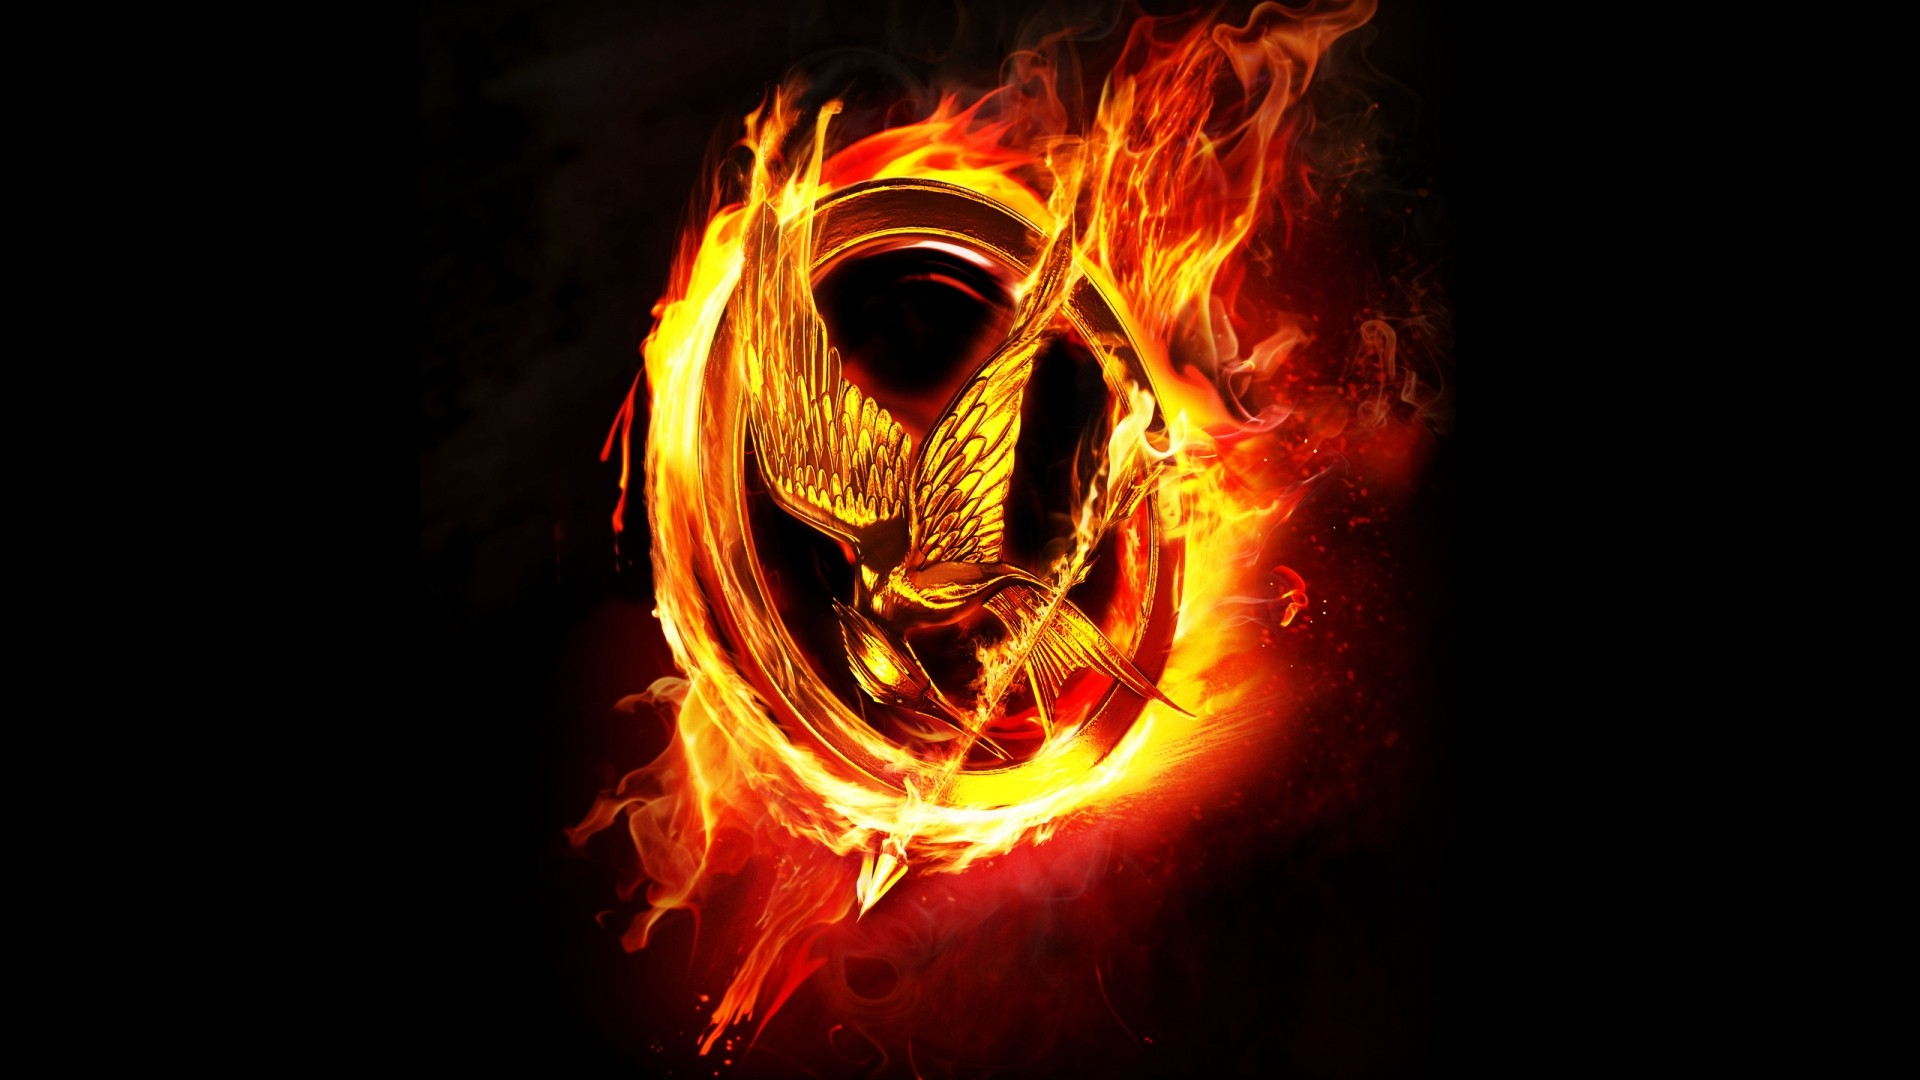 The hunger games hd wallpaper background image 1920x1080 id wallpapers id291493 thecheapjerseys Images